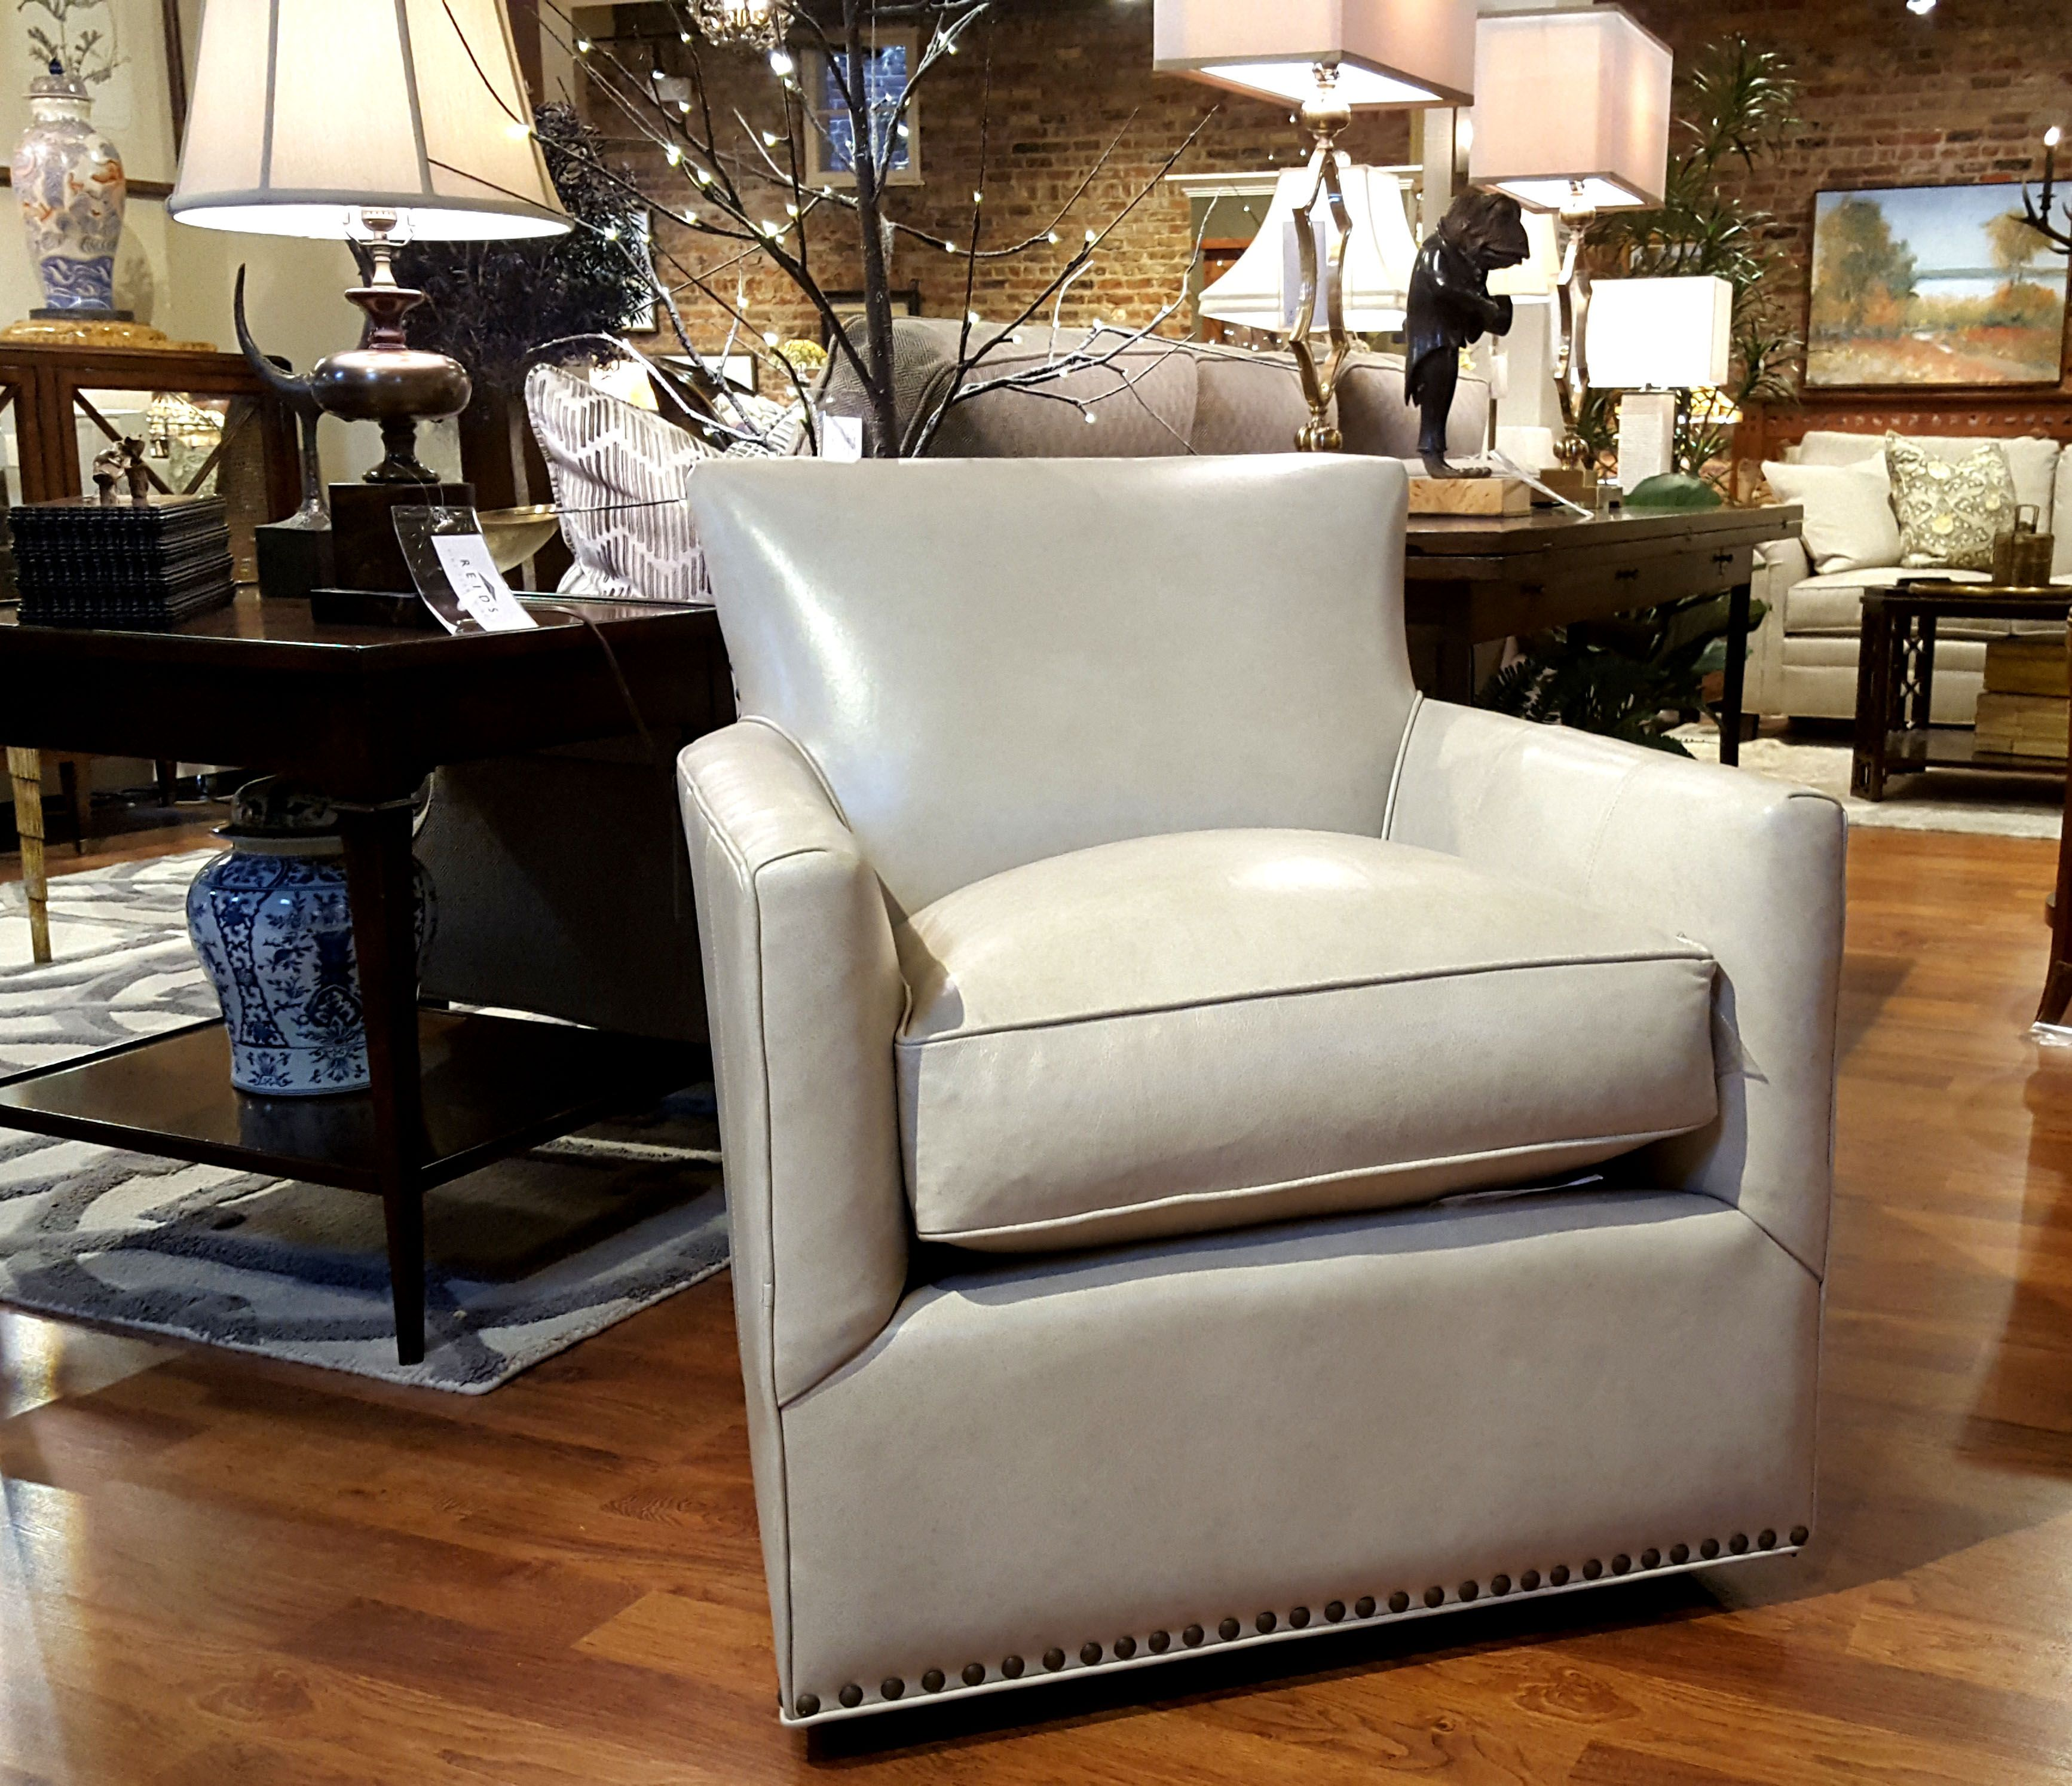 Chair Designs For Living Room This Leather Swivel Chair From Our House Designs Will Easily